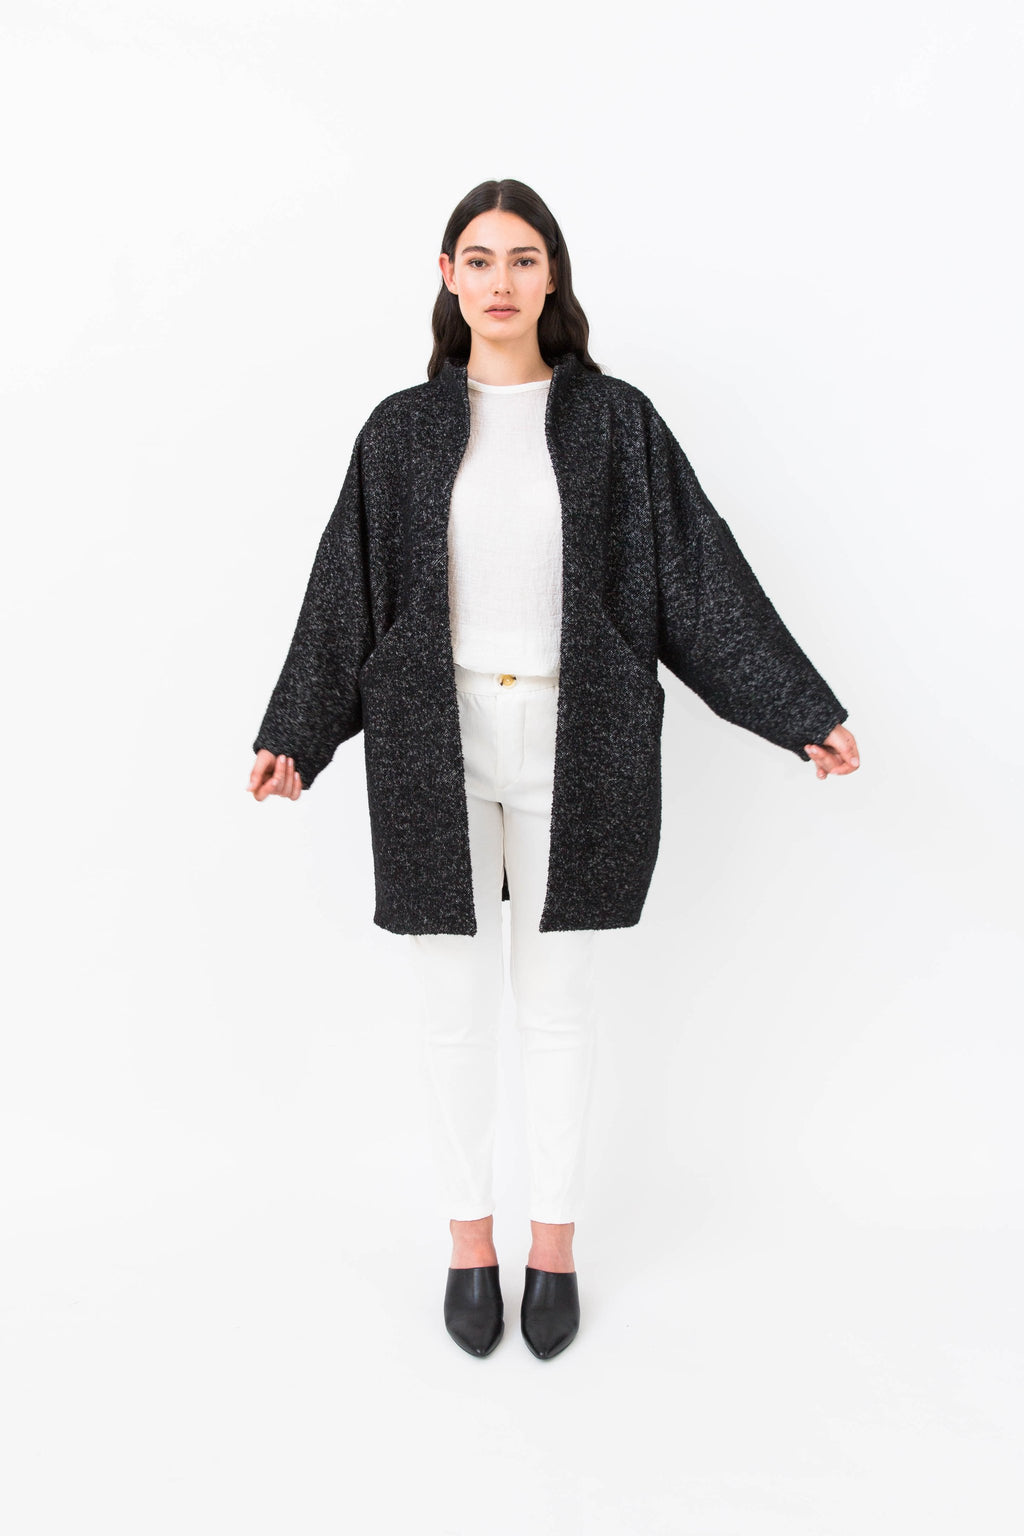 Nova Coat/Jacket by Papercut Patterns